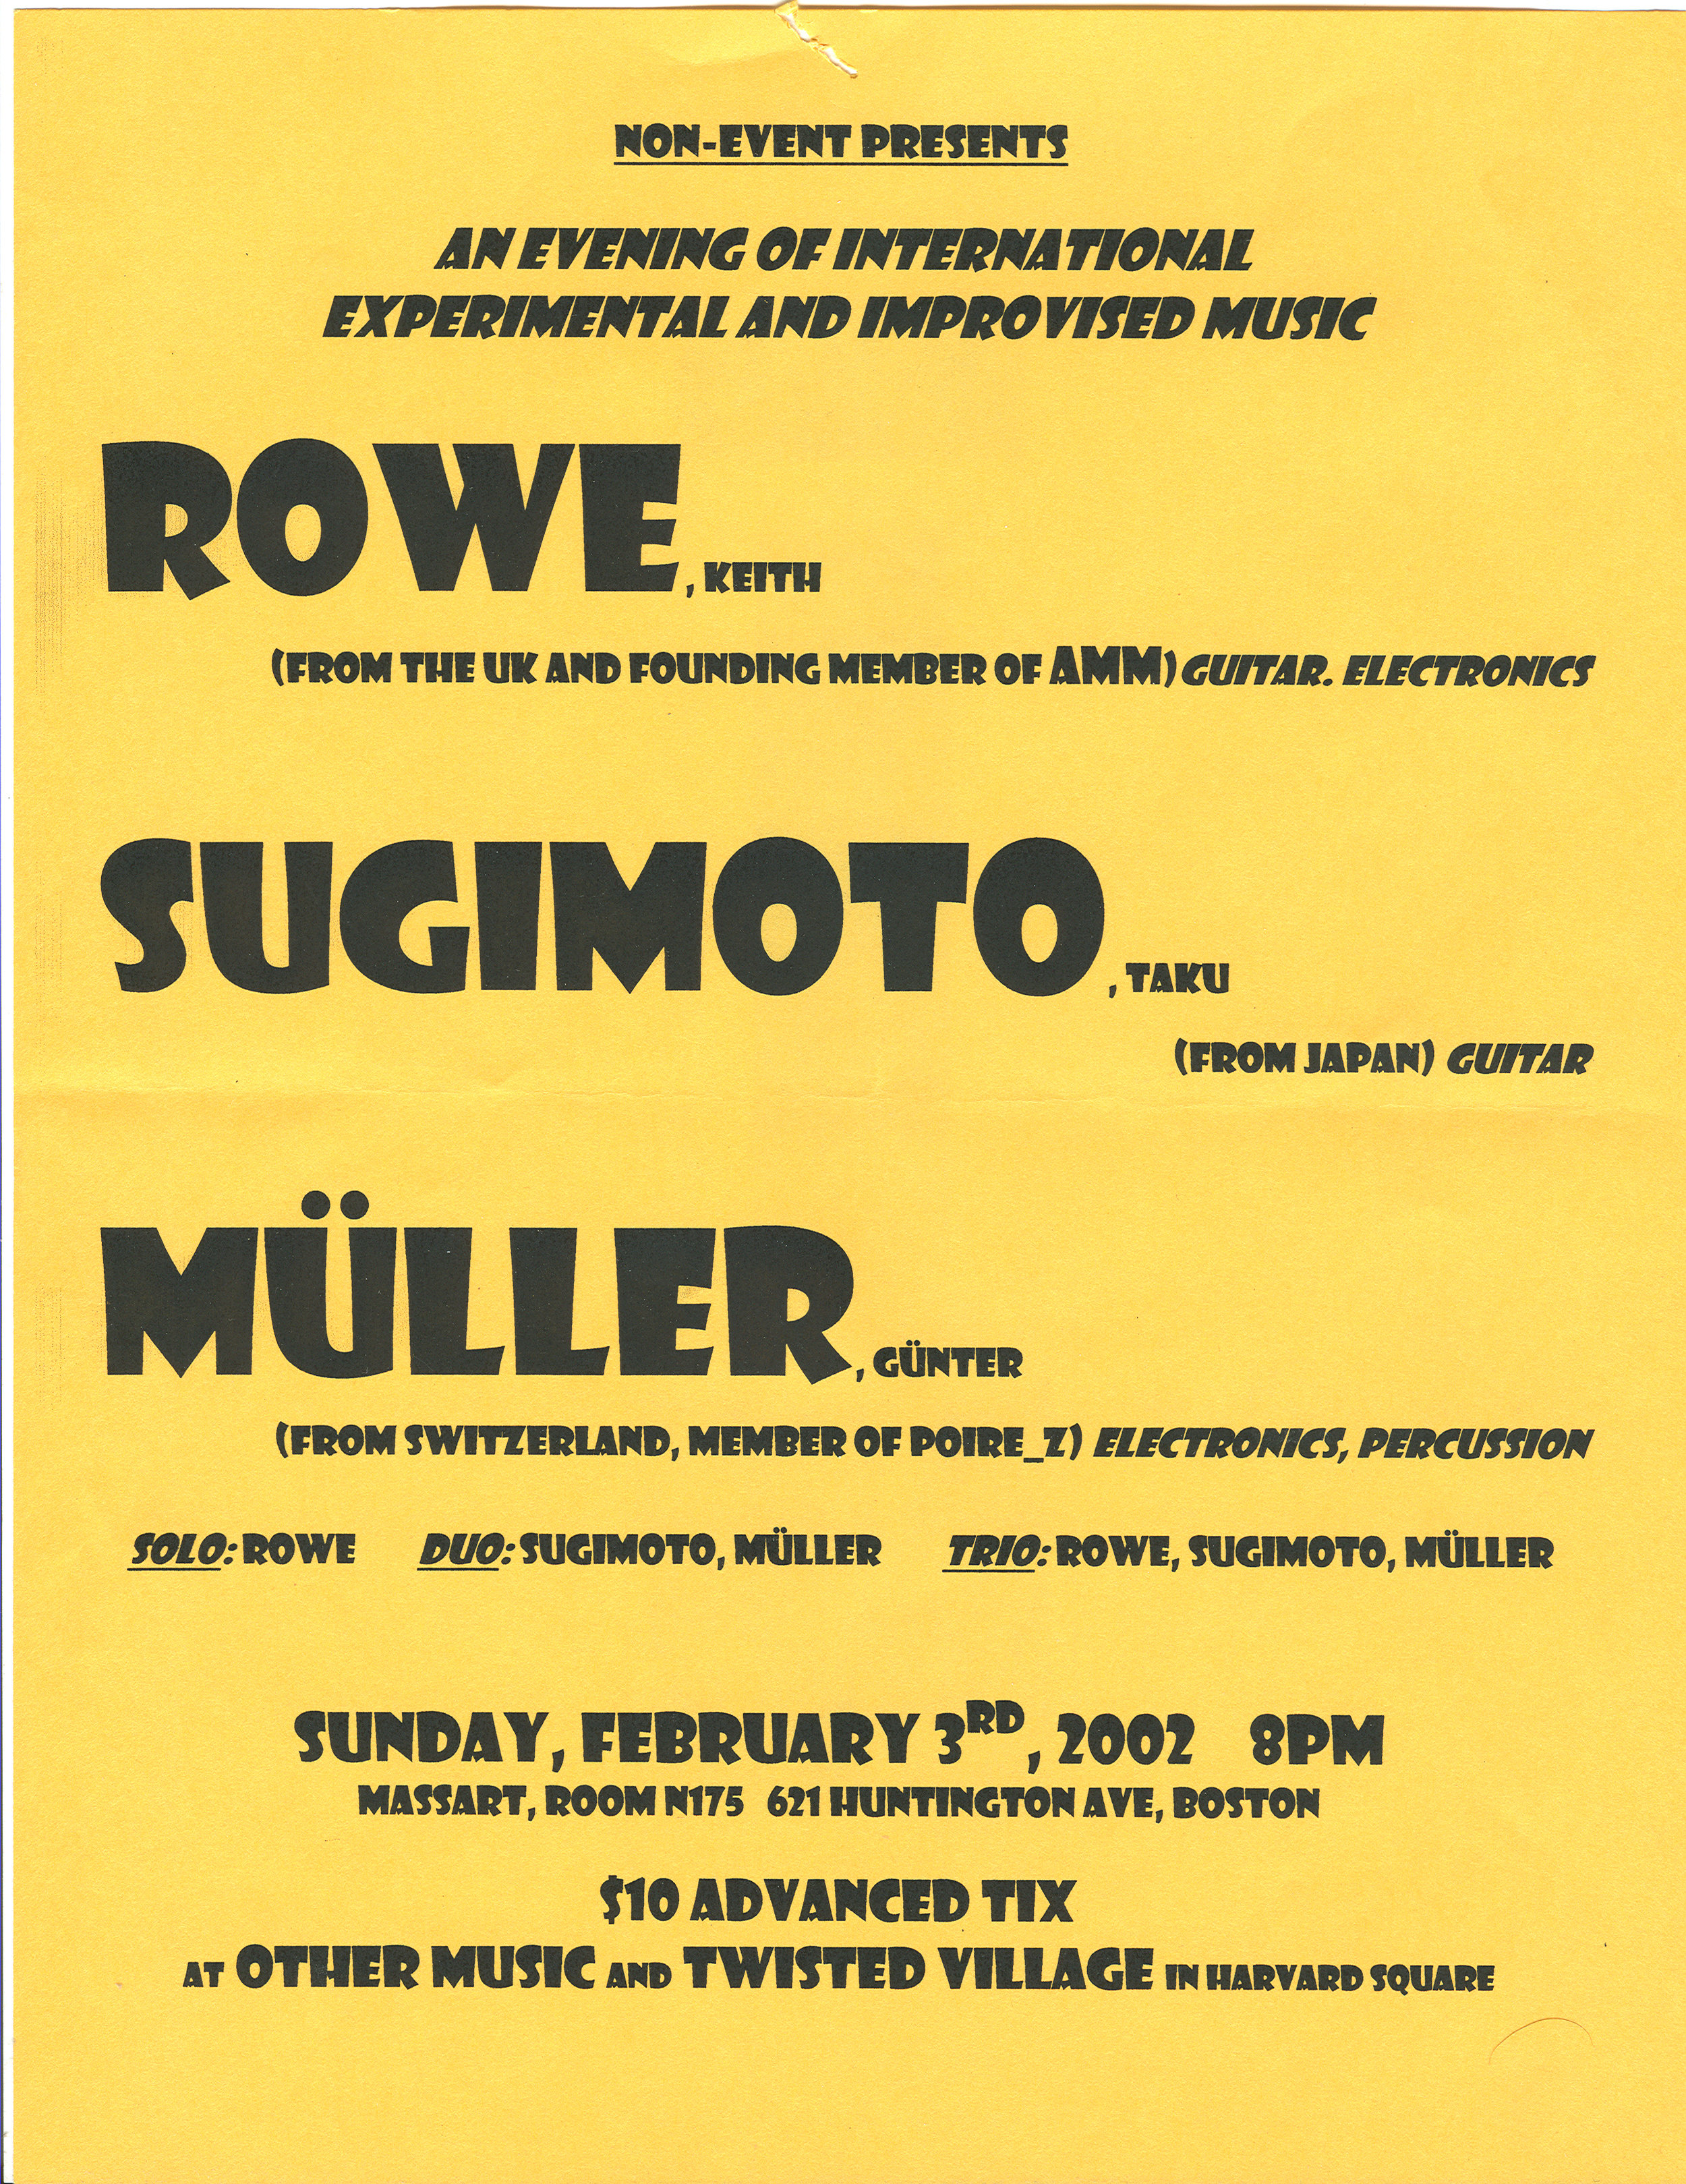 02.03.02-BOSTON-MASSART-NONEVENT-ROWE.jpg